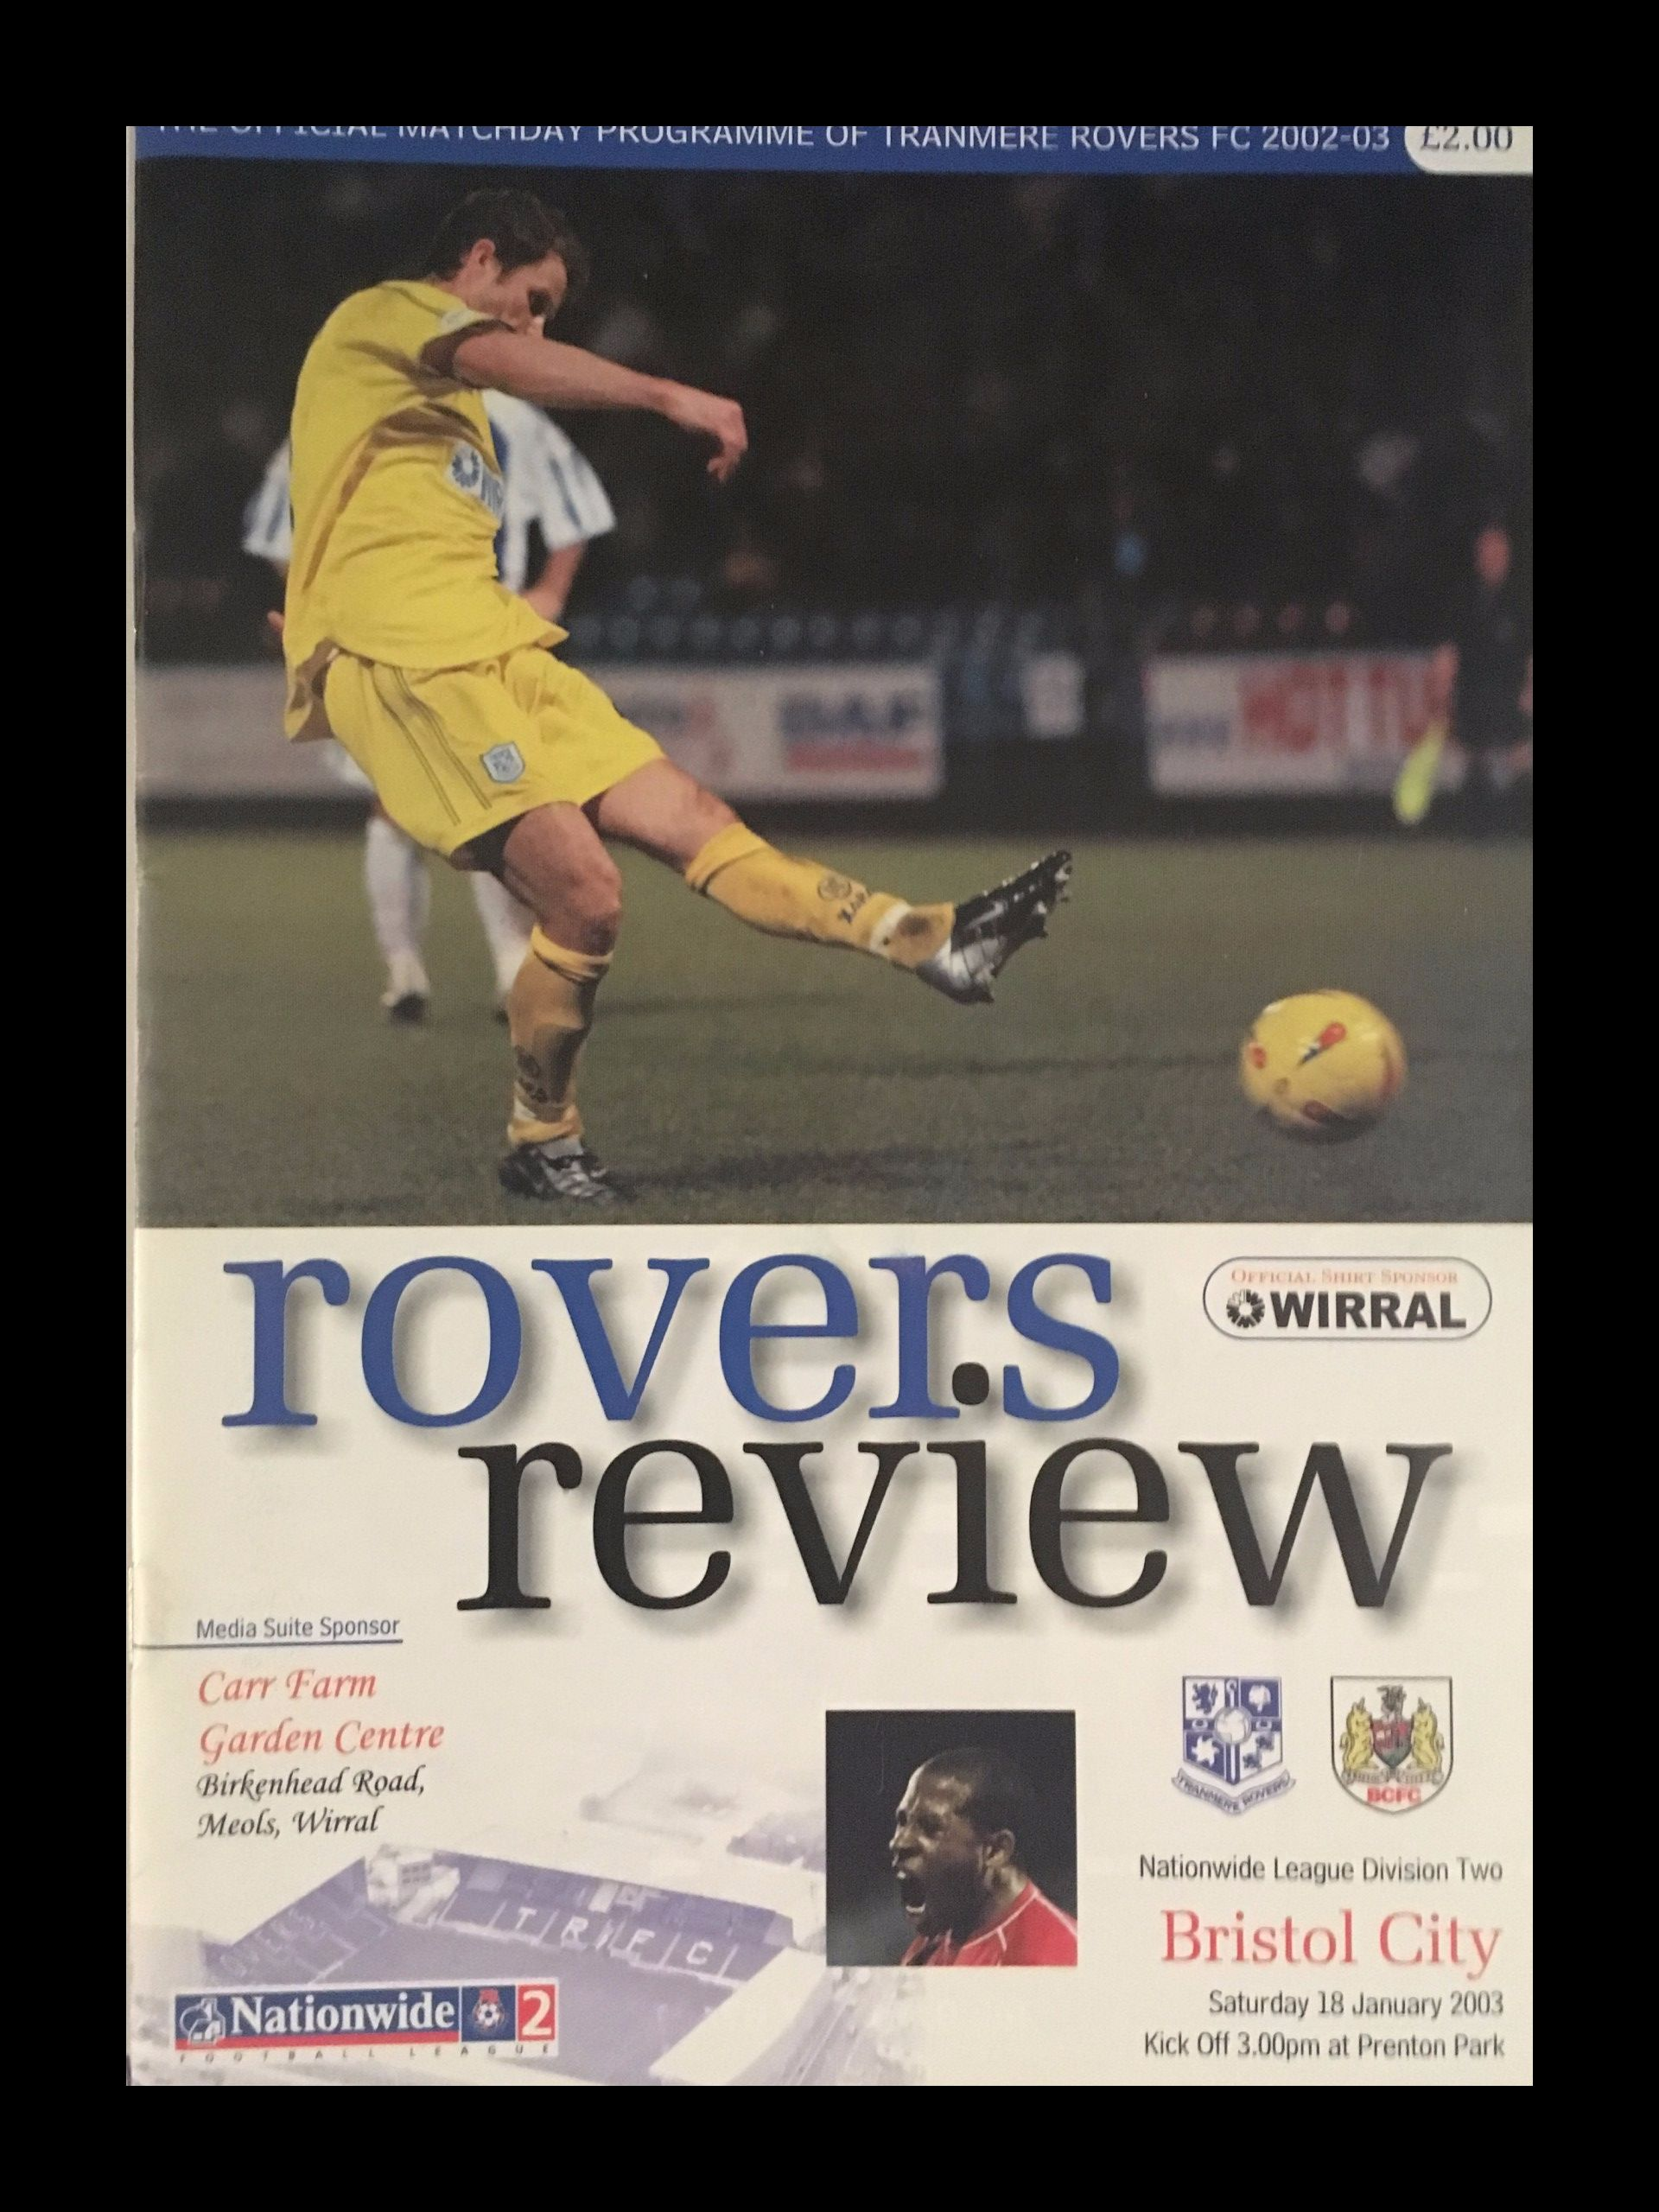 Tranmere Rovers v Bristol City 18-01-2003 Programme